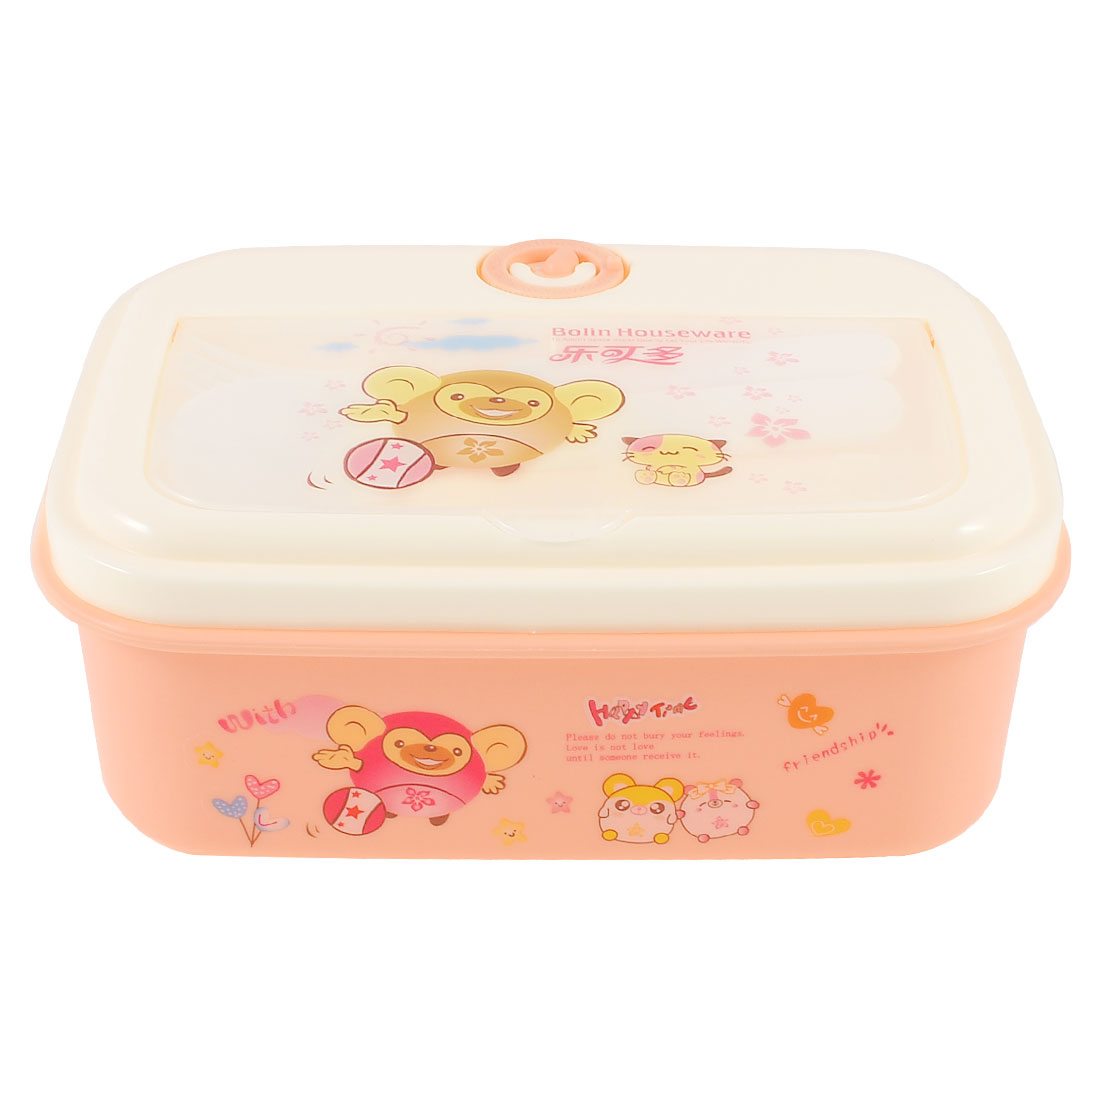 Household Cartoon Printed Rectangle Lunch Box Food Holder Container Light Pink